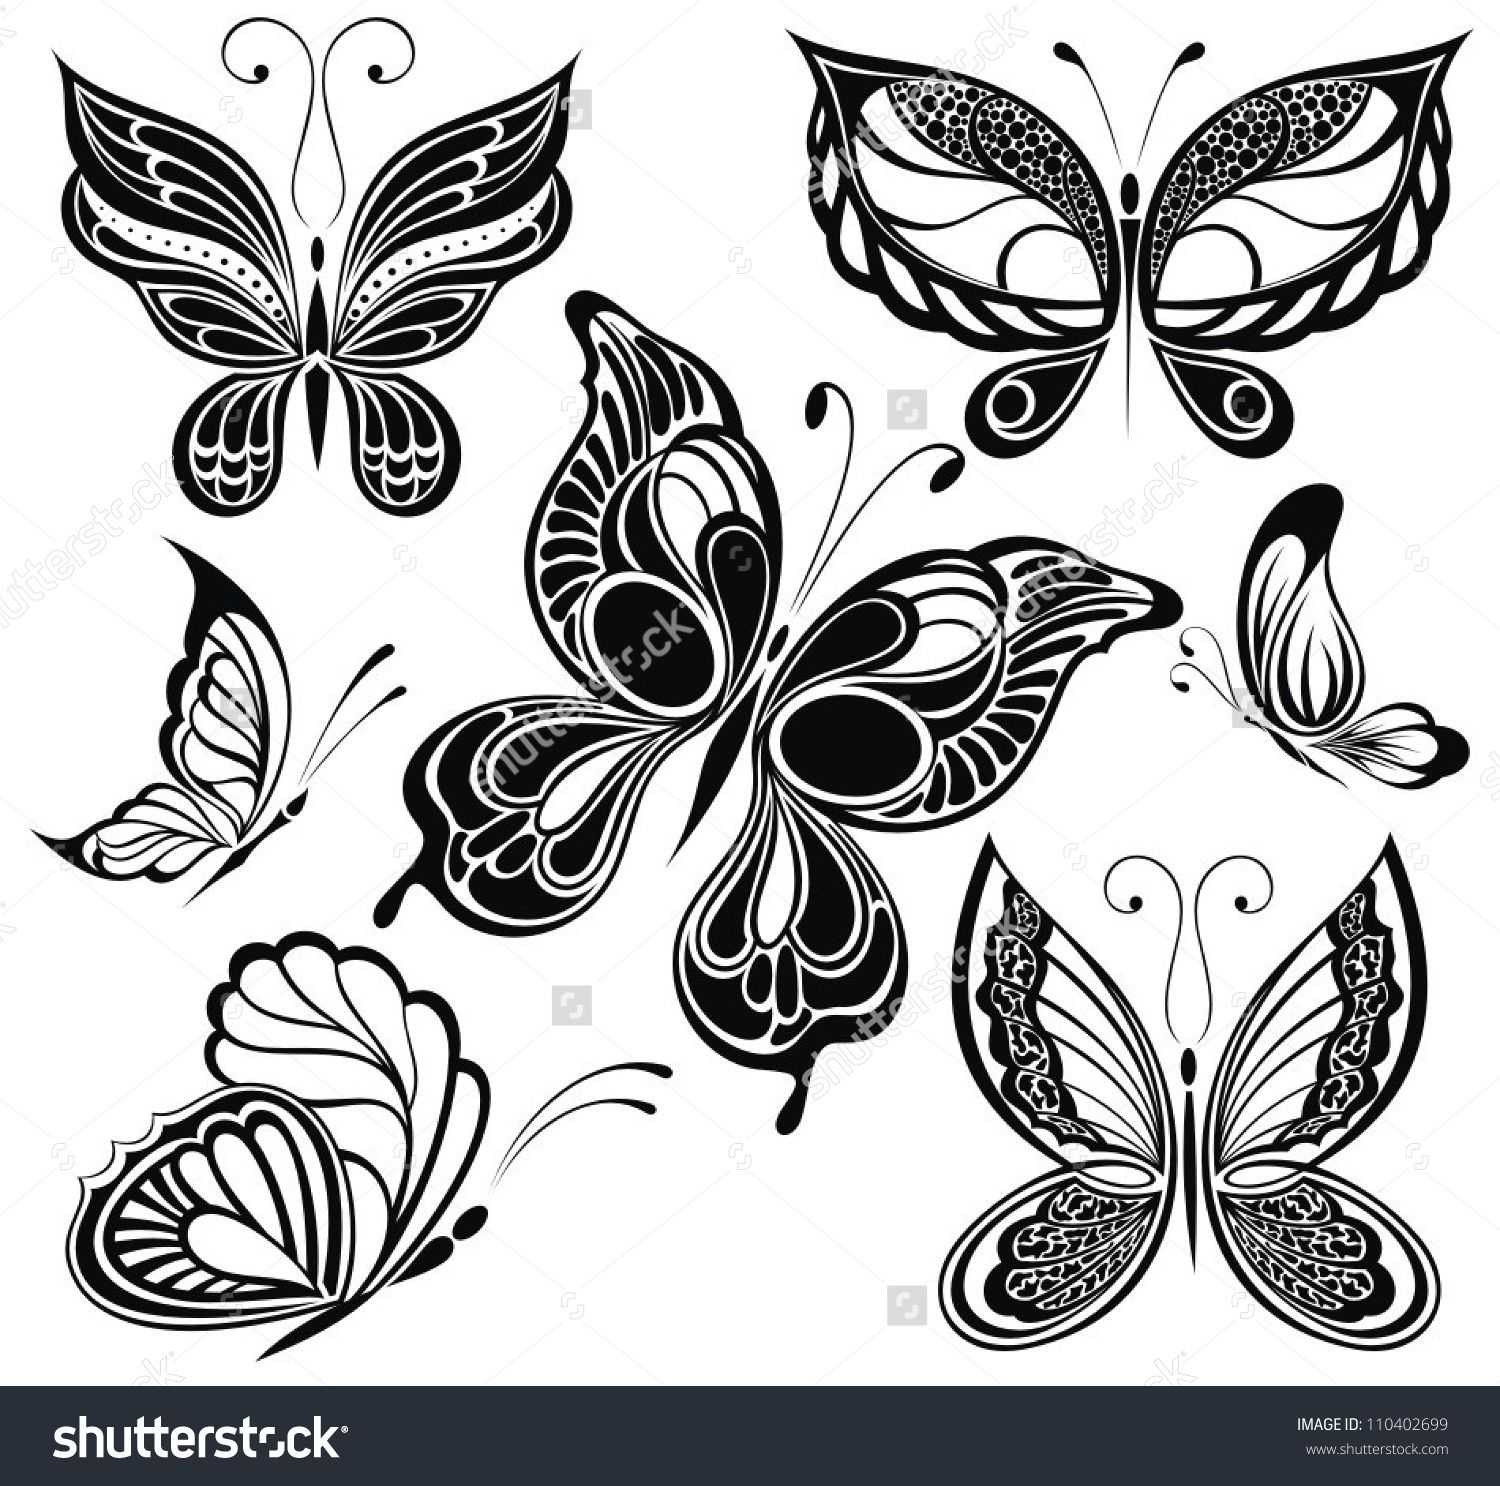 Black and white butterflies tattoo design stock vector for Black and white tattoo artists